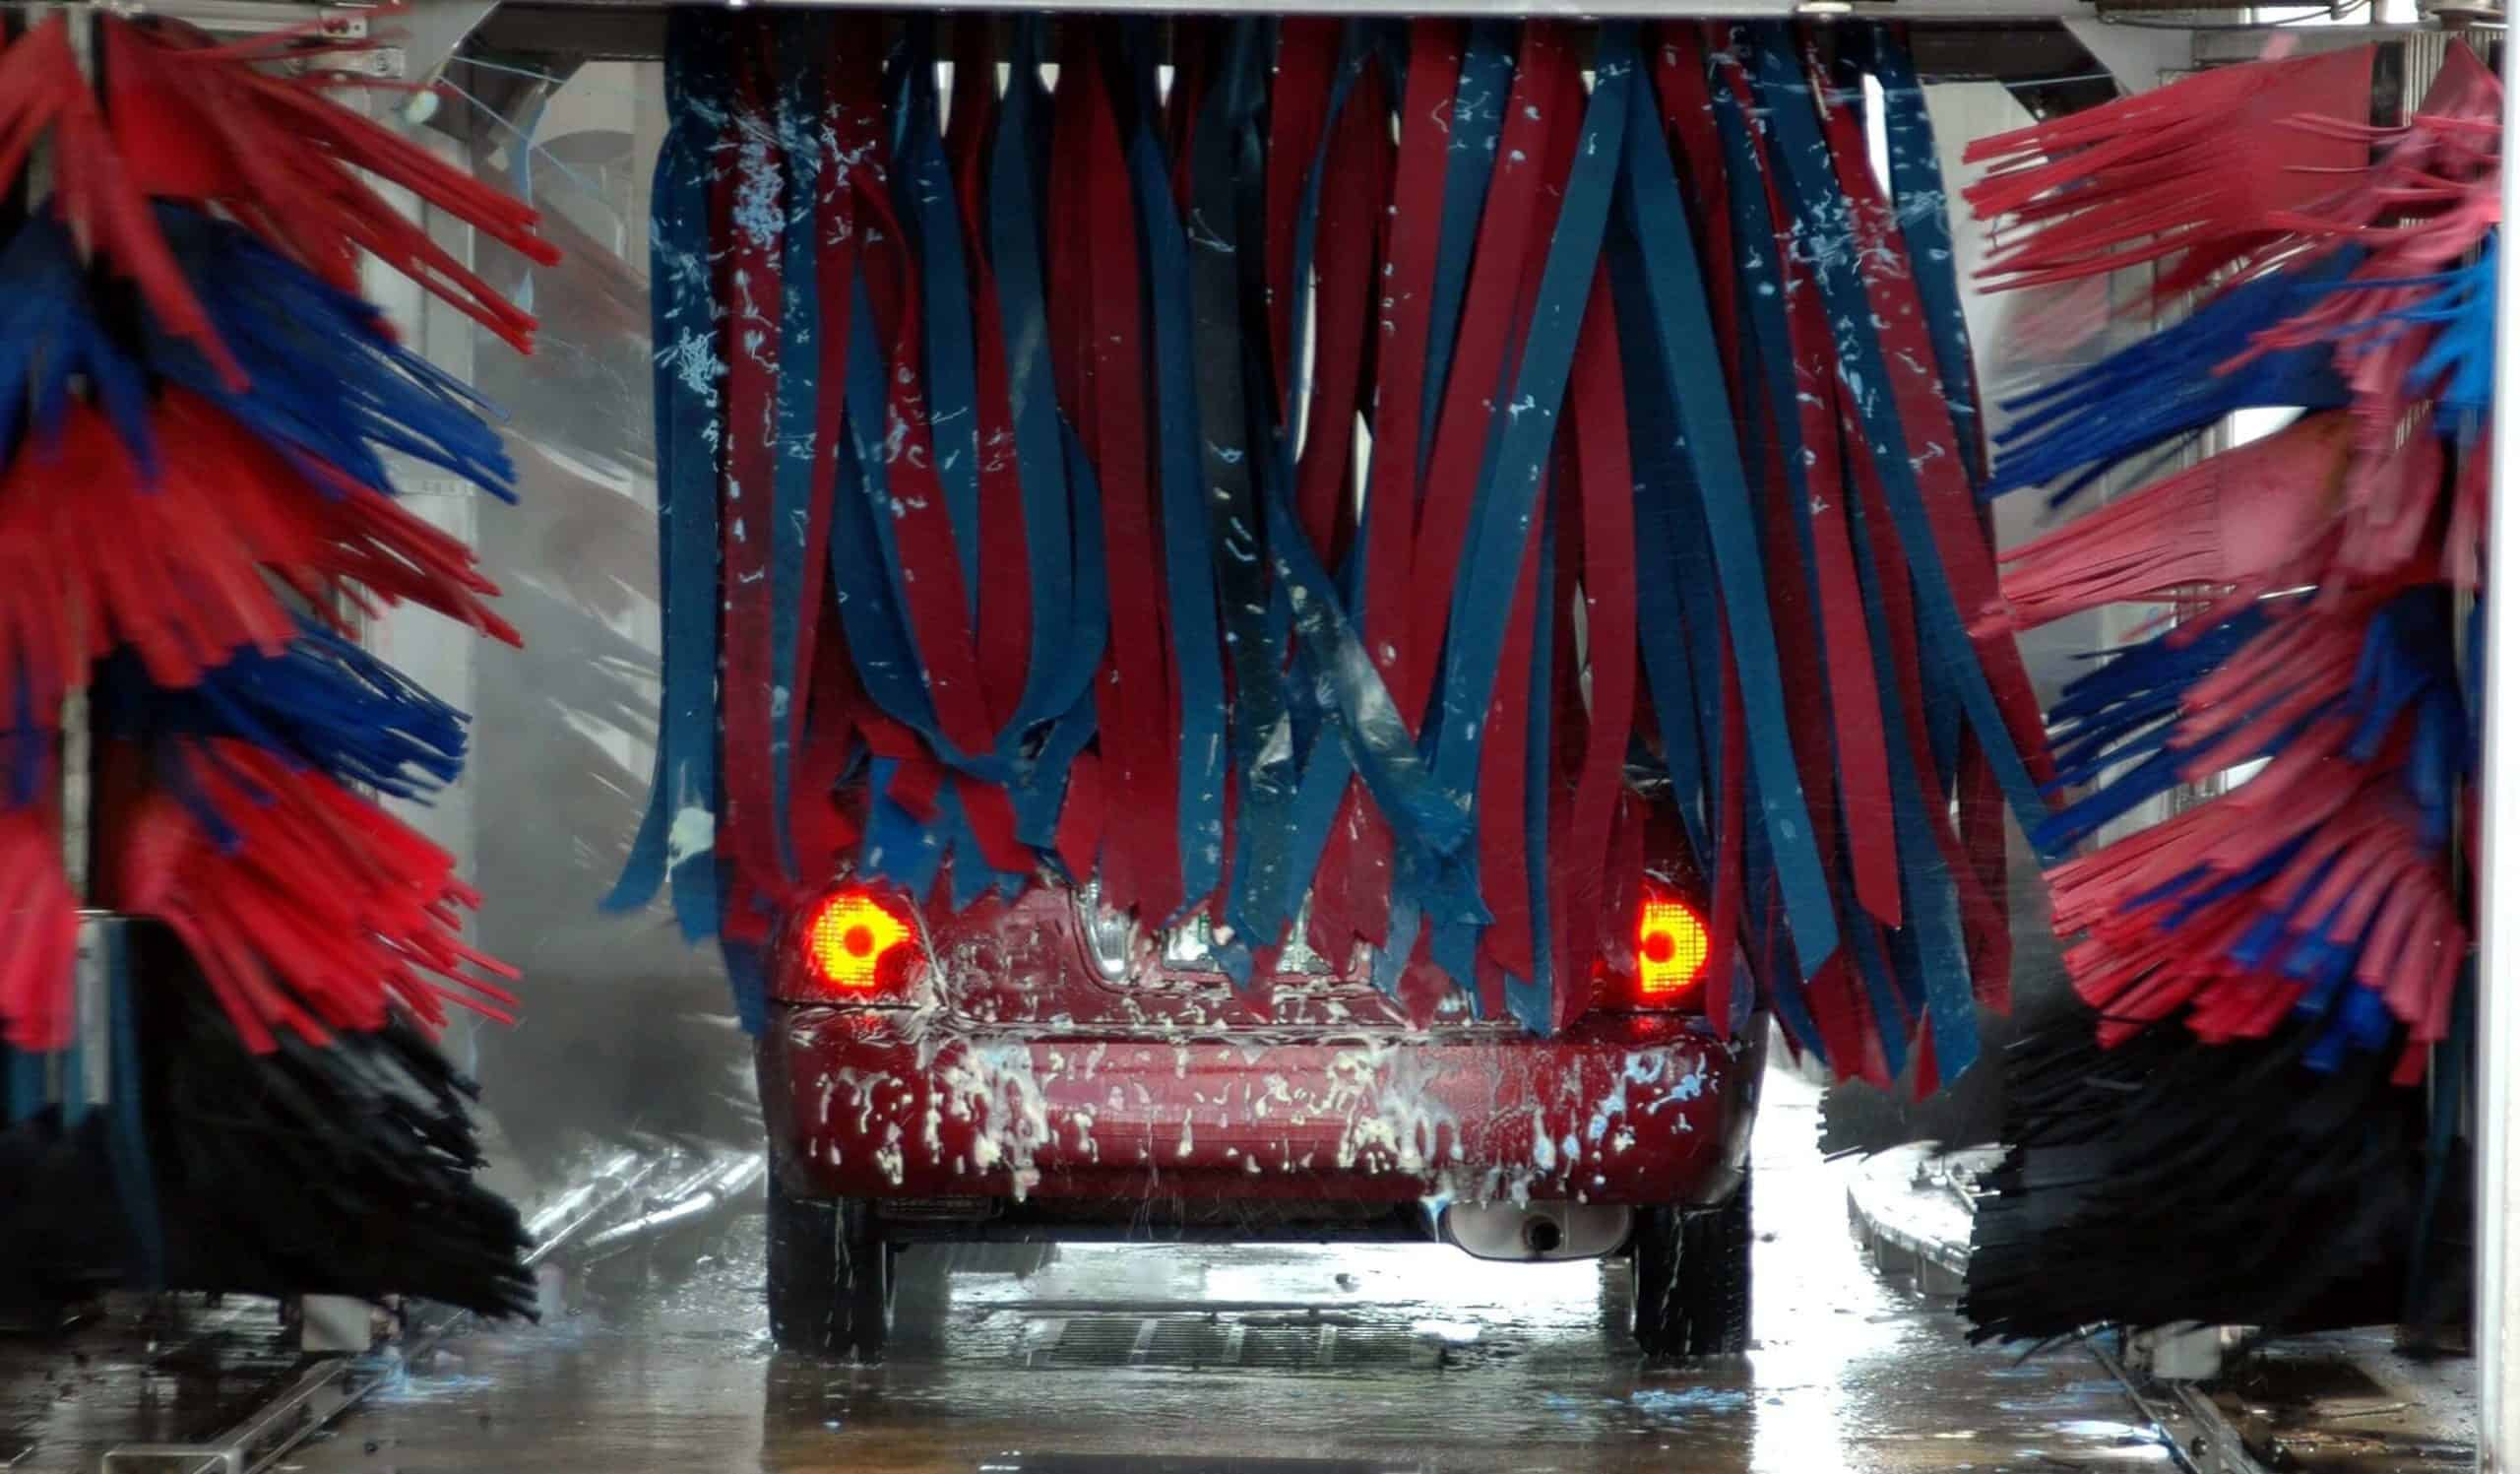 digital marketing resources for car washes